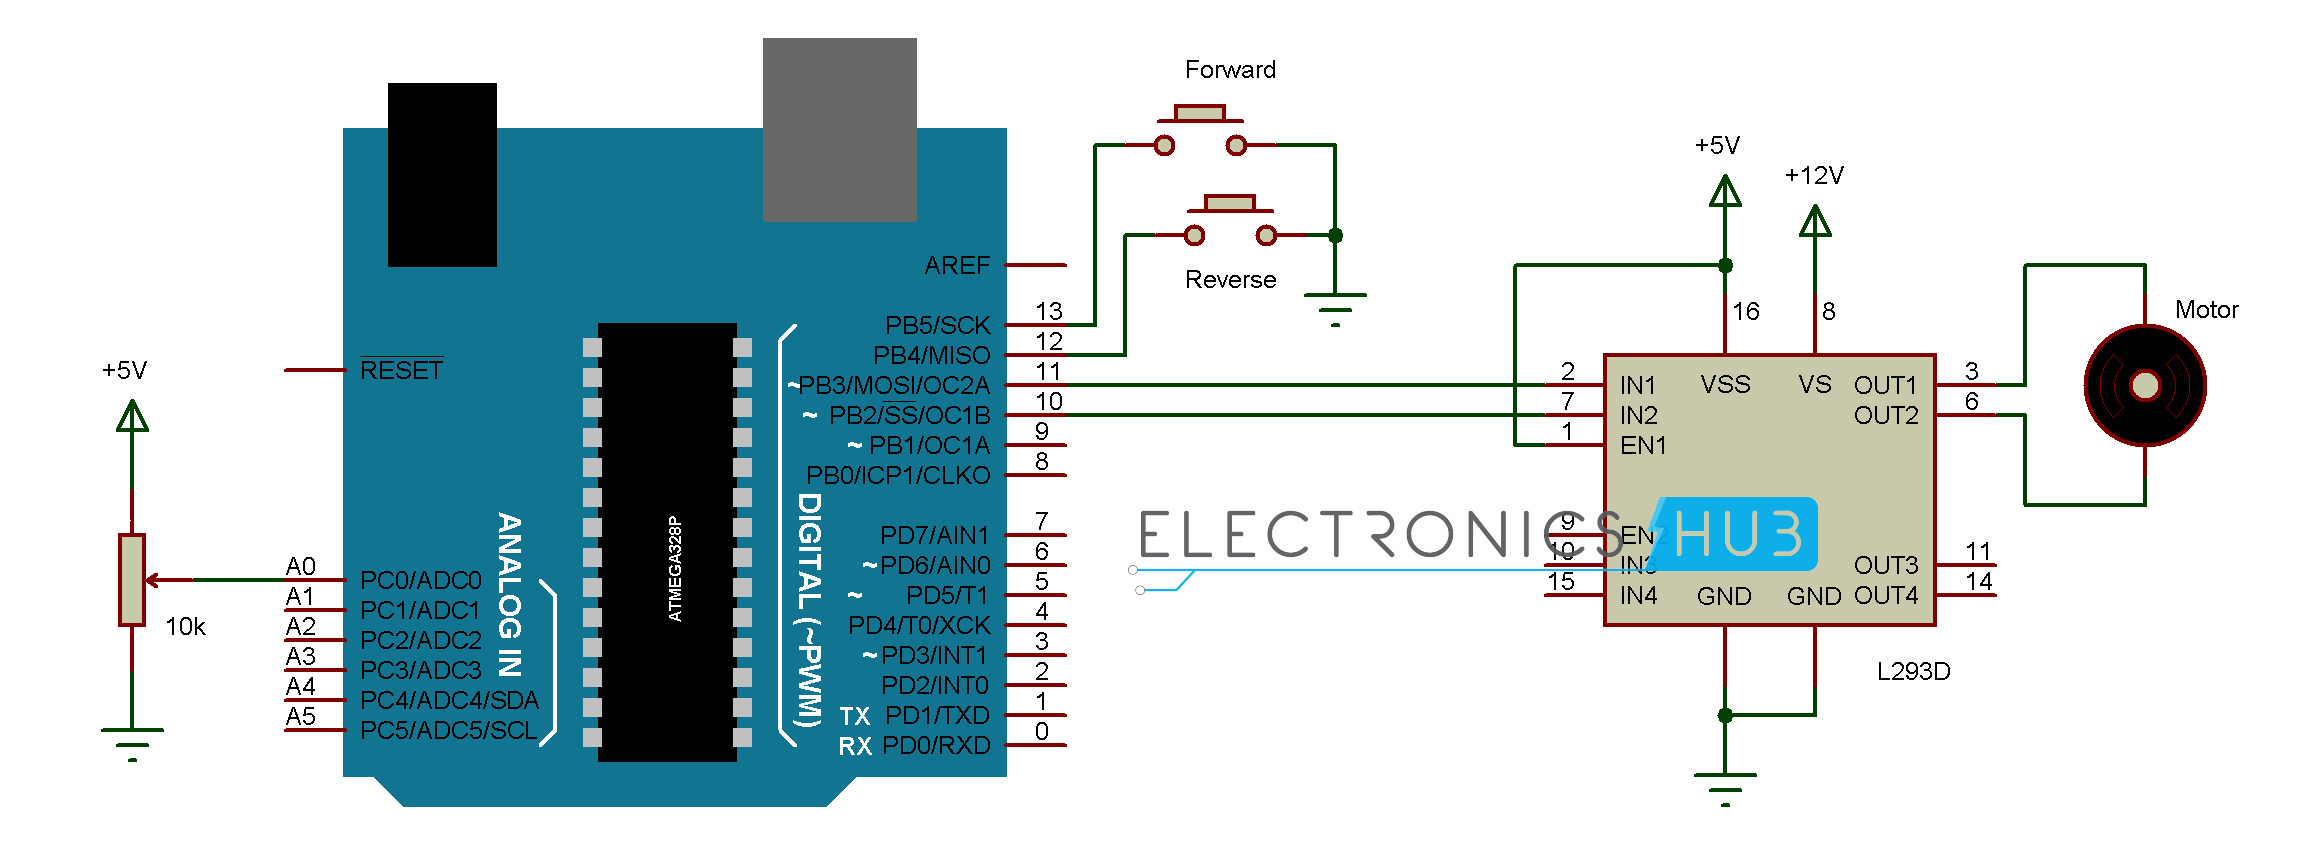 Dc Motor Control Circuit Diagram Motor Repalcement Parts And Diagram